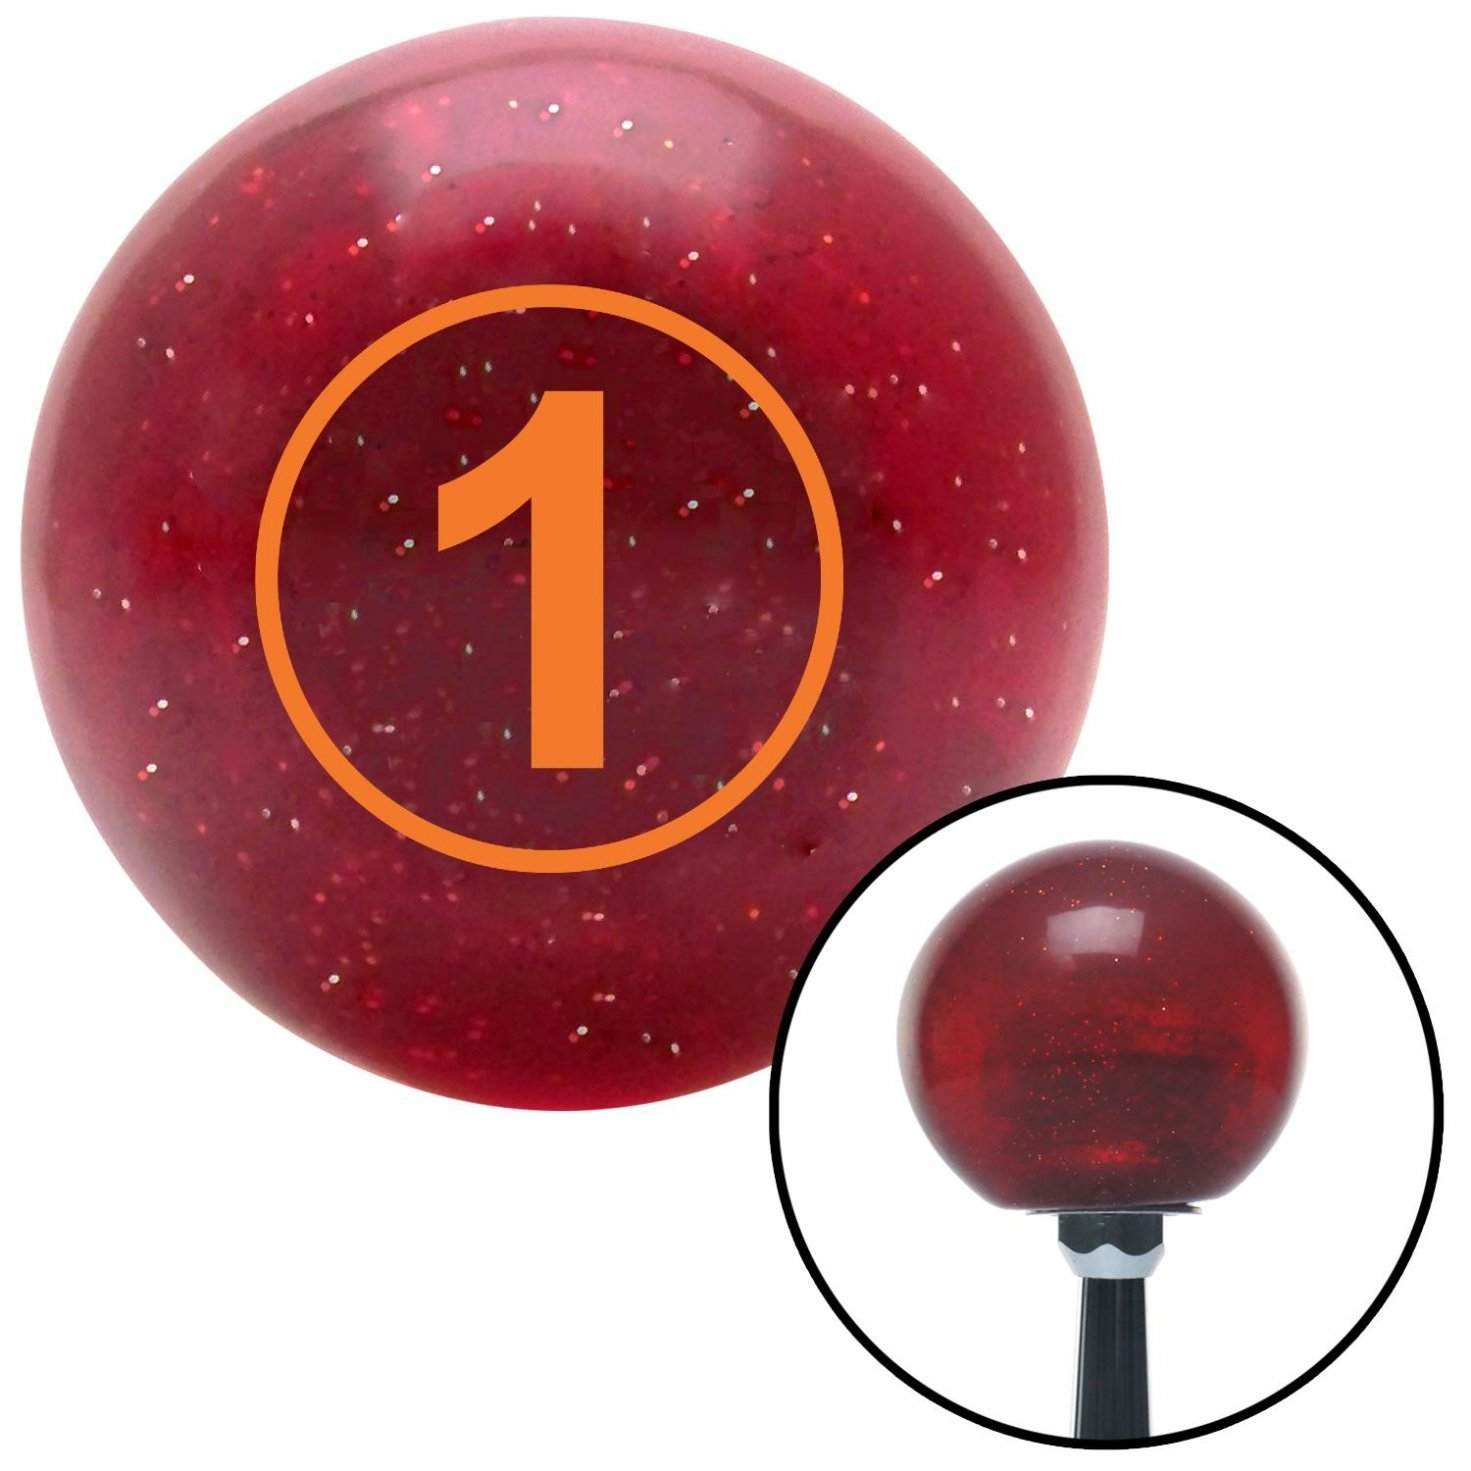 Orange Ball #1 American Shifter 47405 Red Metal Flake Shift Knob with 16mm x 1.5 Insert